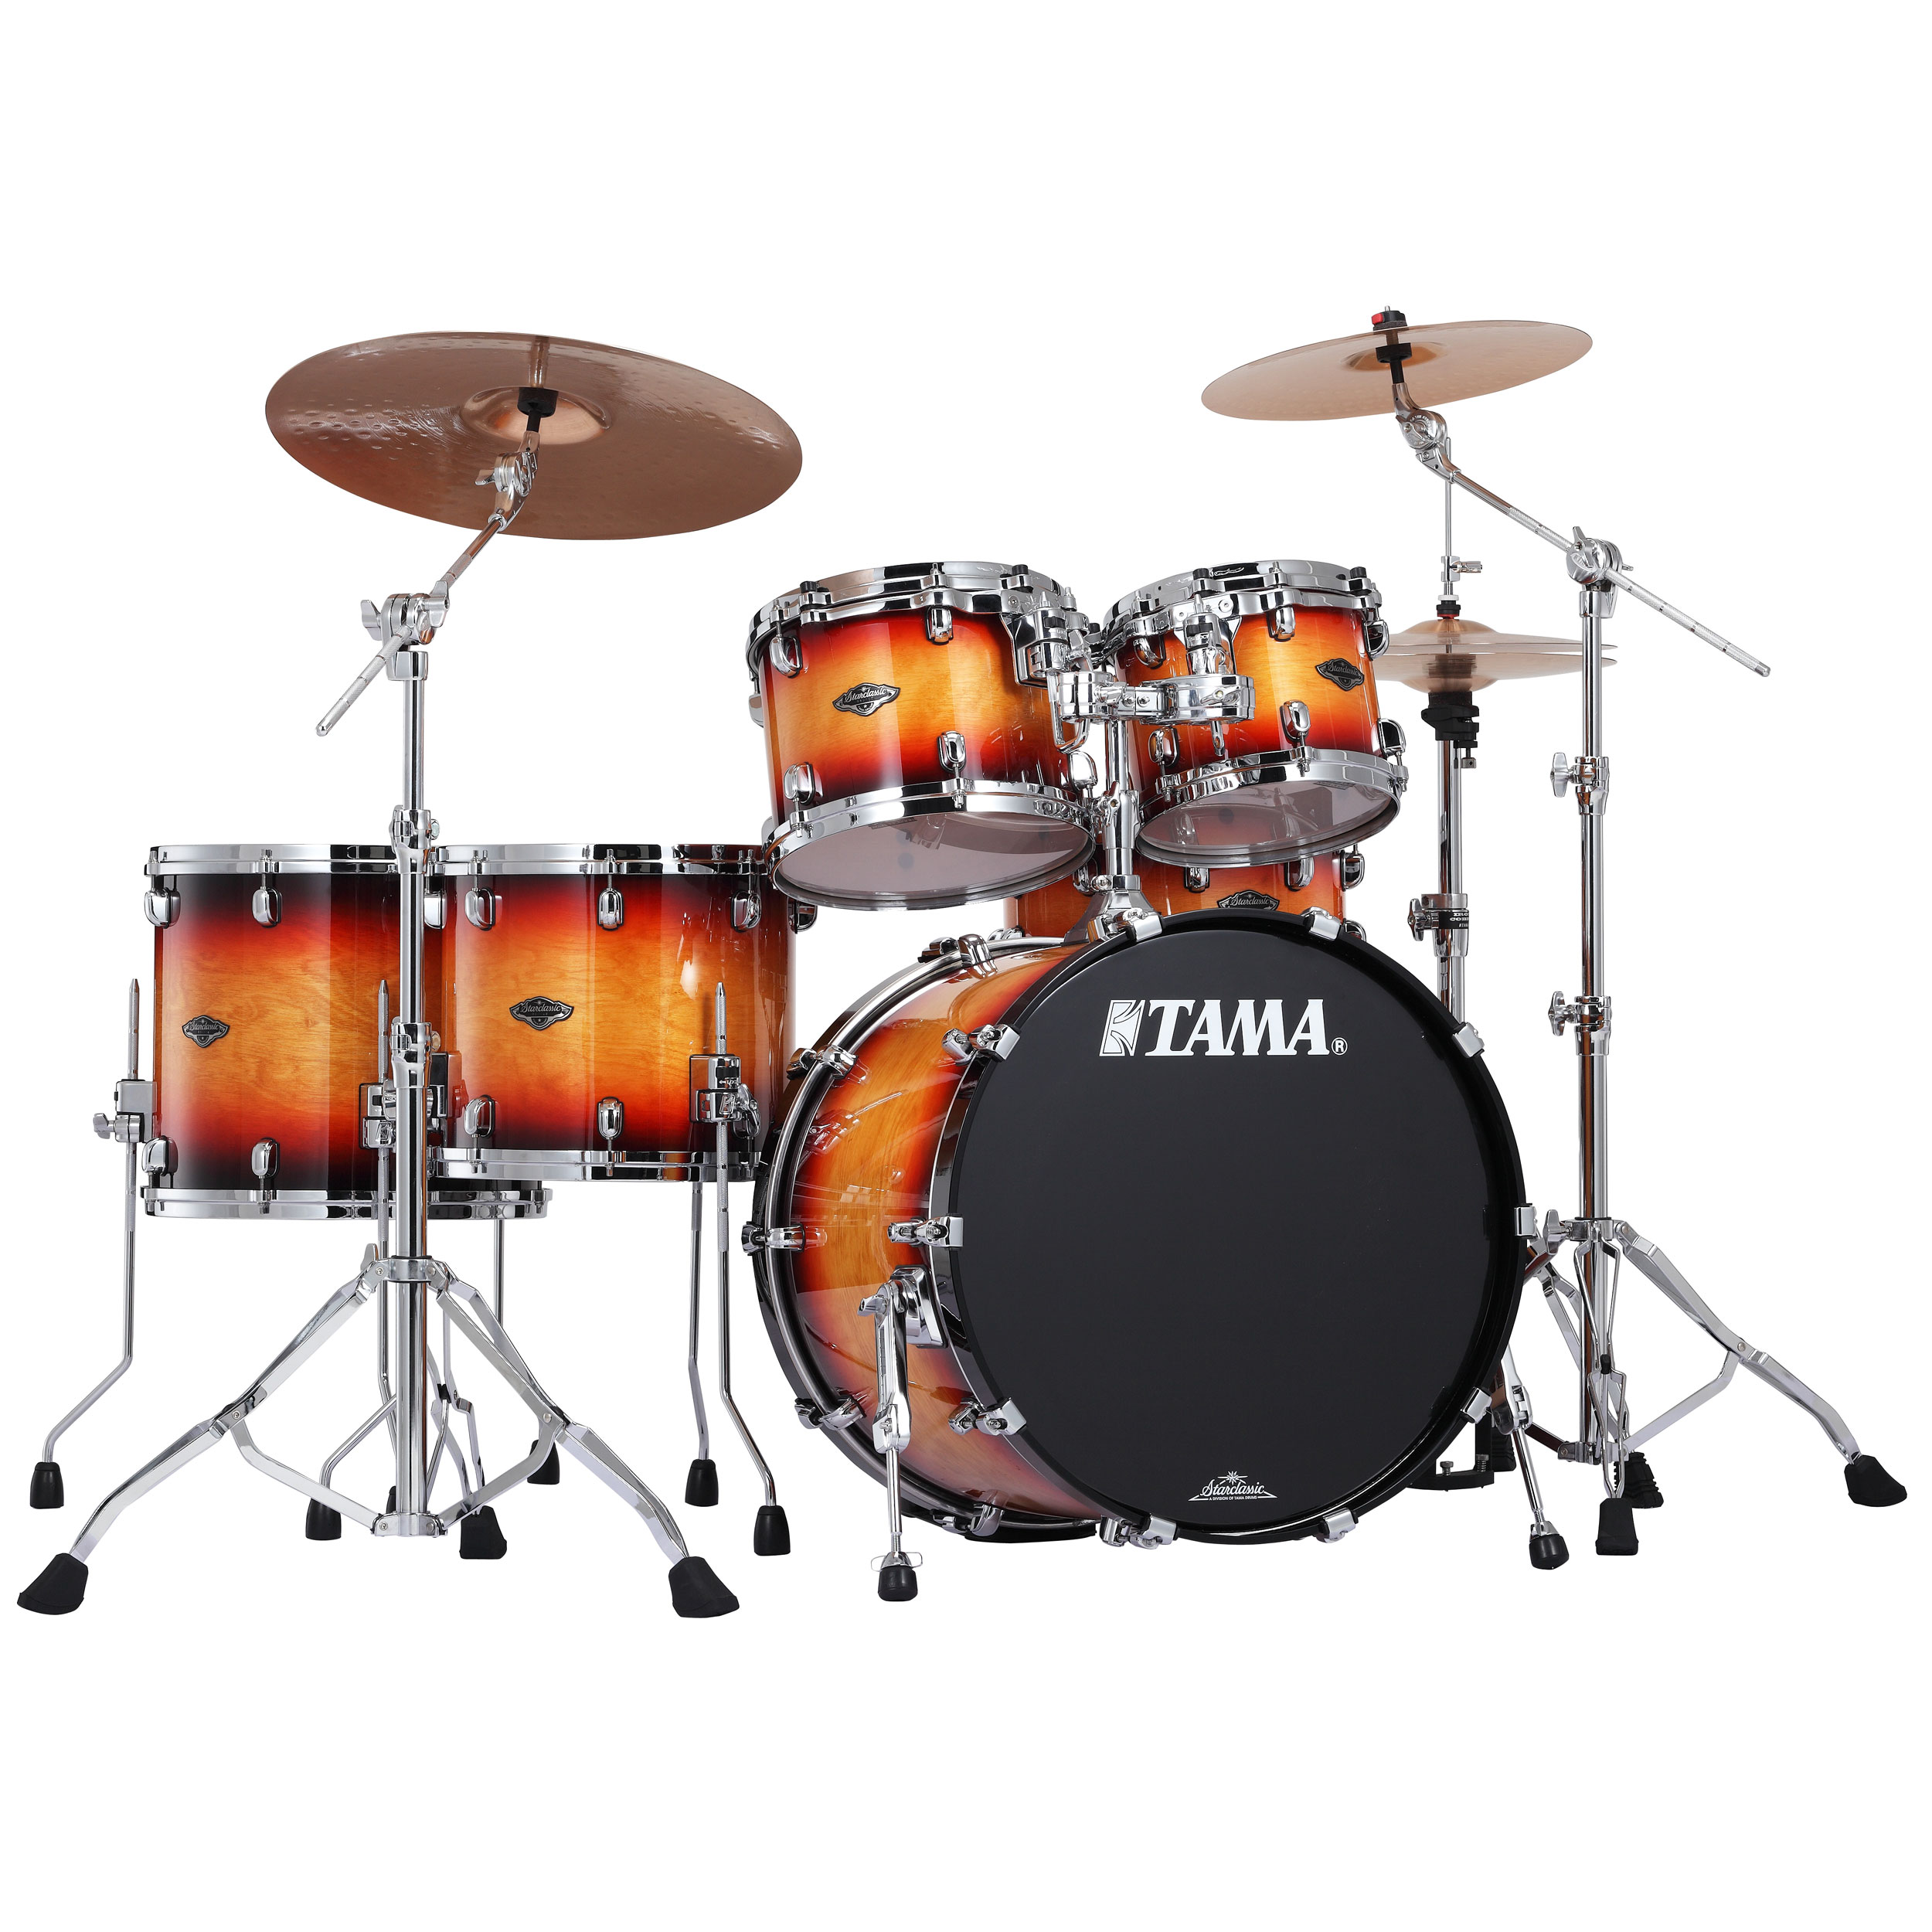 "Tama Starclassic Performer B/B 5-Piece Drum Set Shell Pack (22"" Bass, 10/12/14/16"" Toms) in Transparent/Solid Finish"